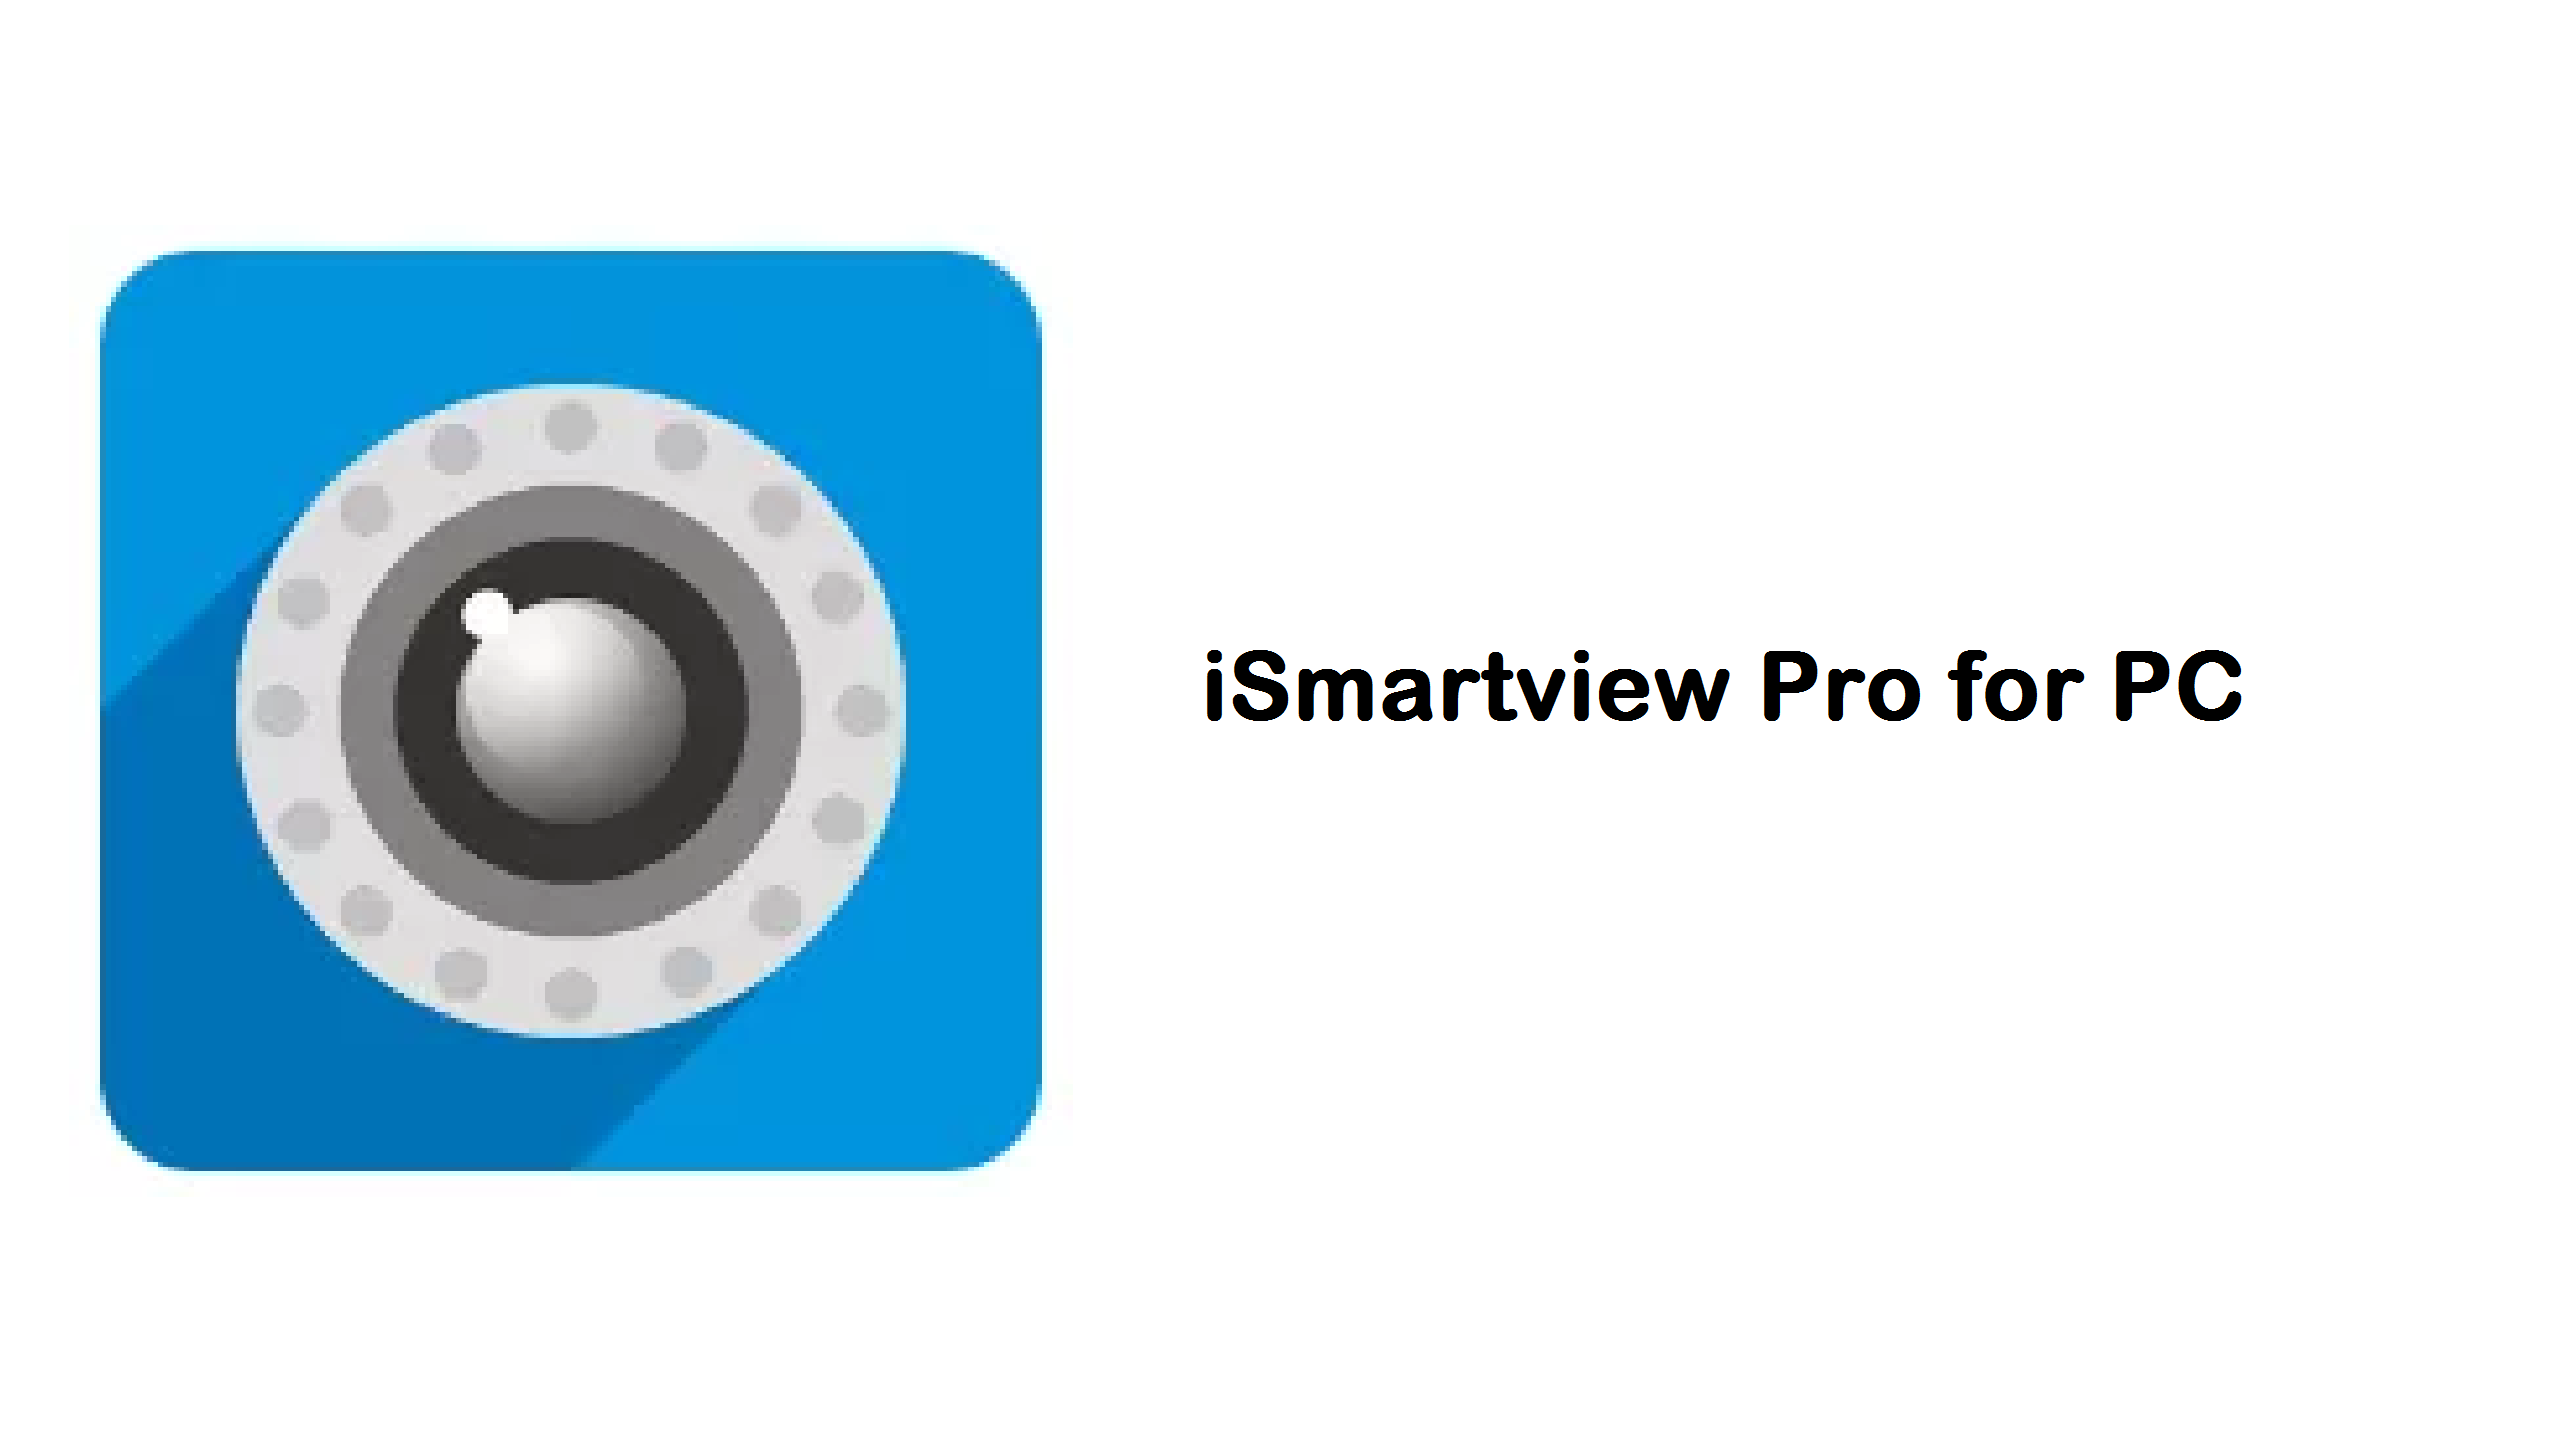 Installation guide to ismartviewpro for pc with simple steps in 2020